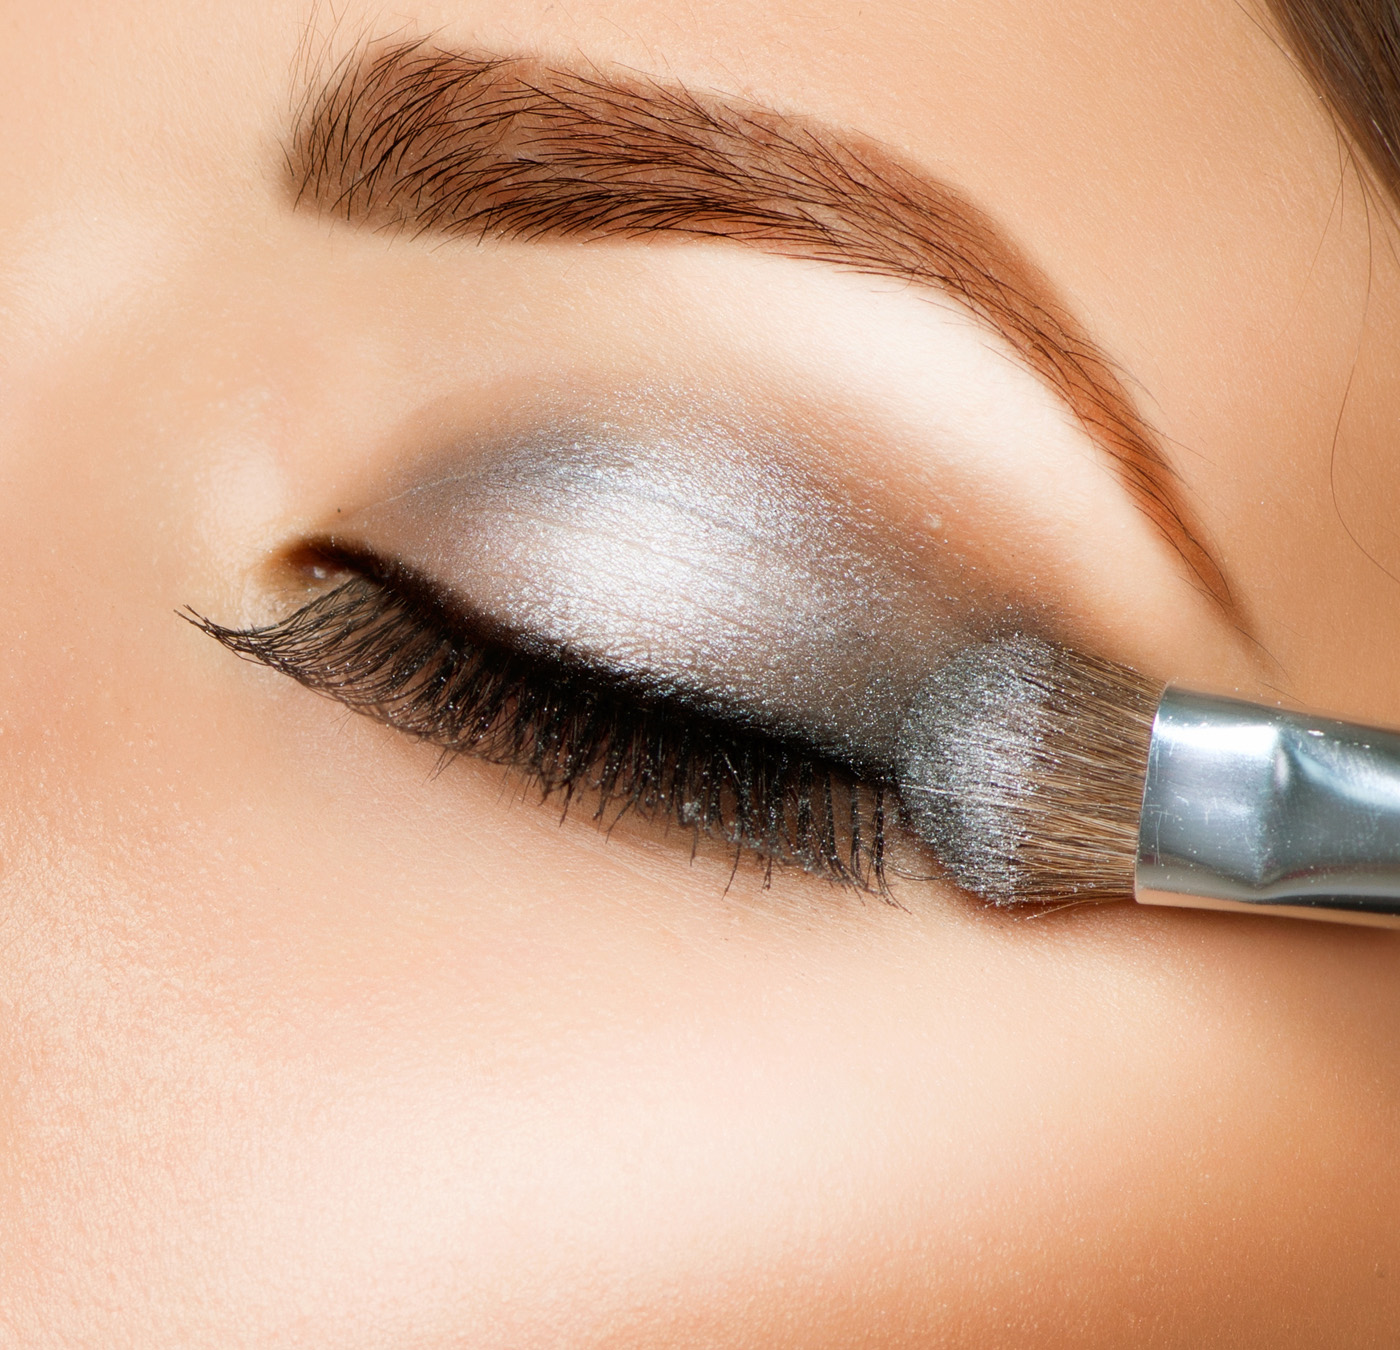 Silver eye shadow makeup 31485